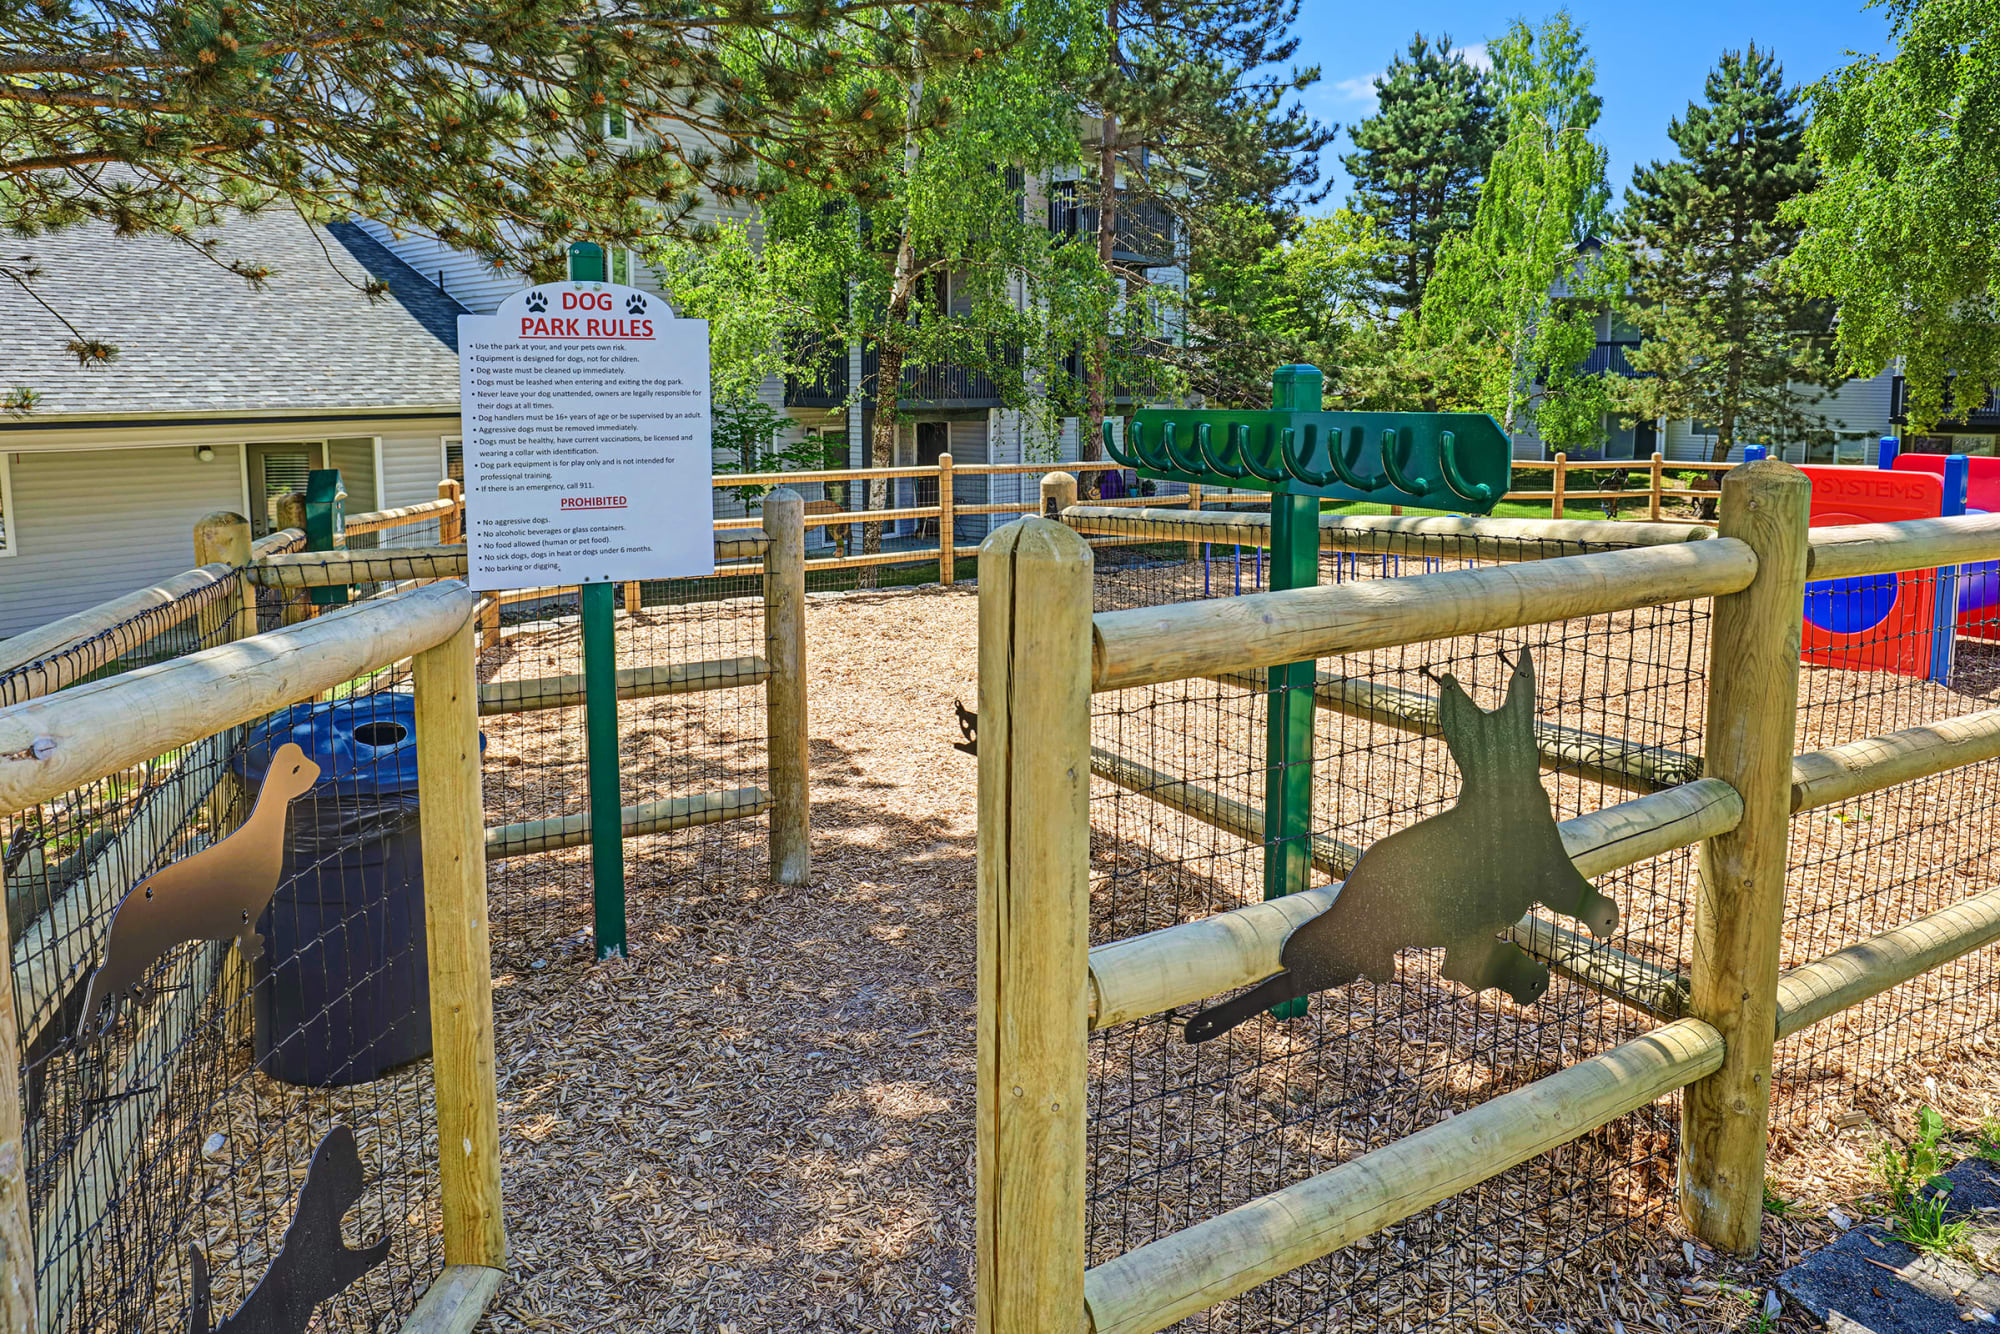 The gate to the dog park at Cascade Ridge in Silverdale, Washington